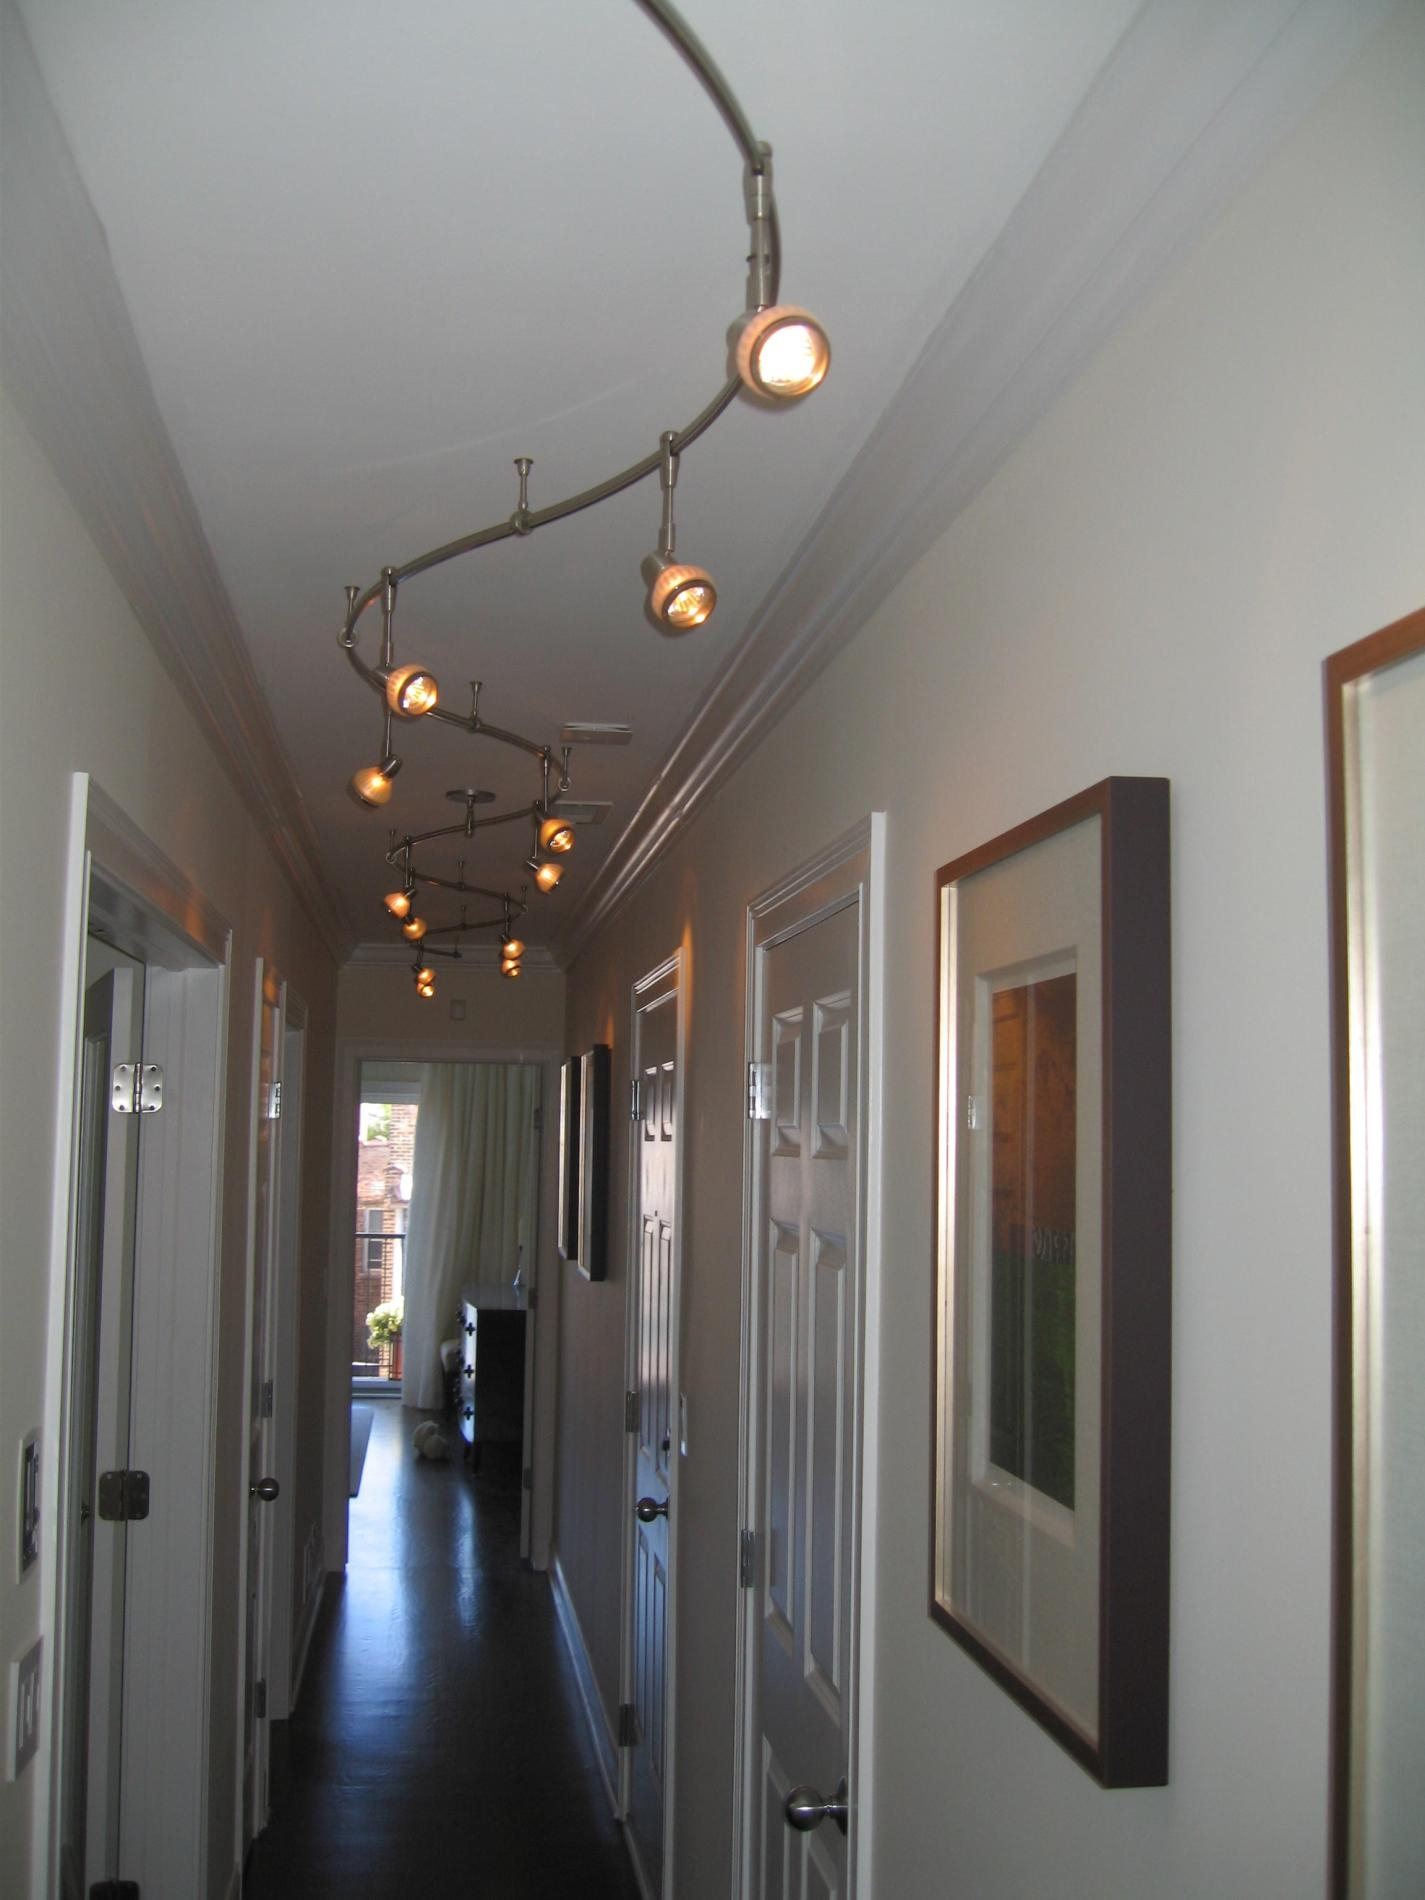 Viewing s of Small Hallway Chandeliers Showing 8 of 12 s